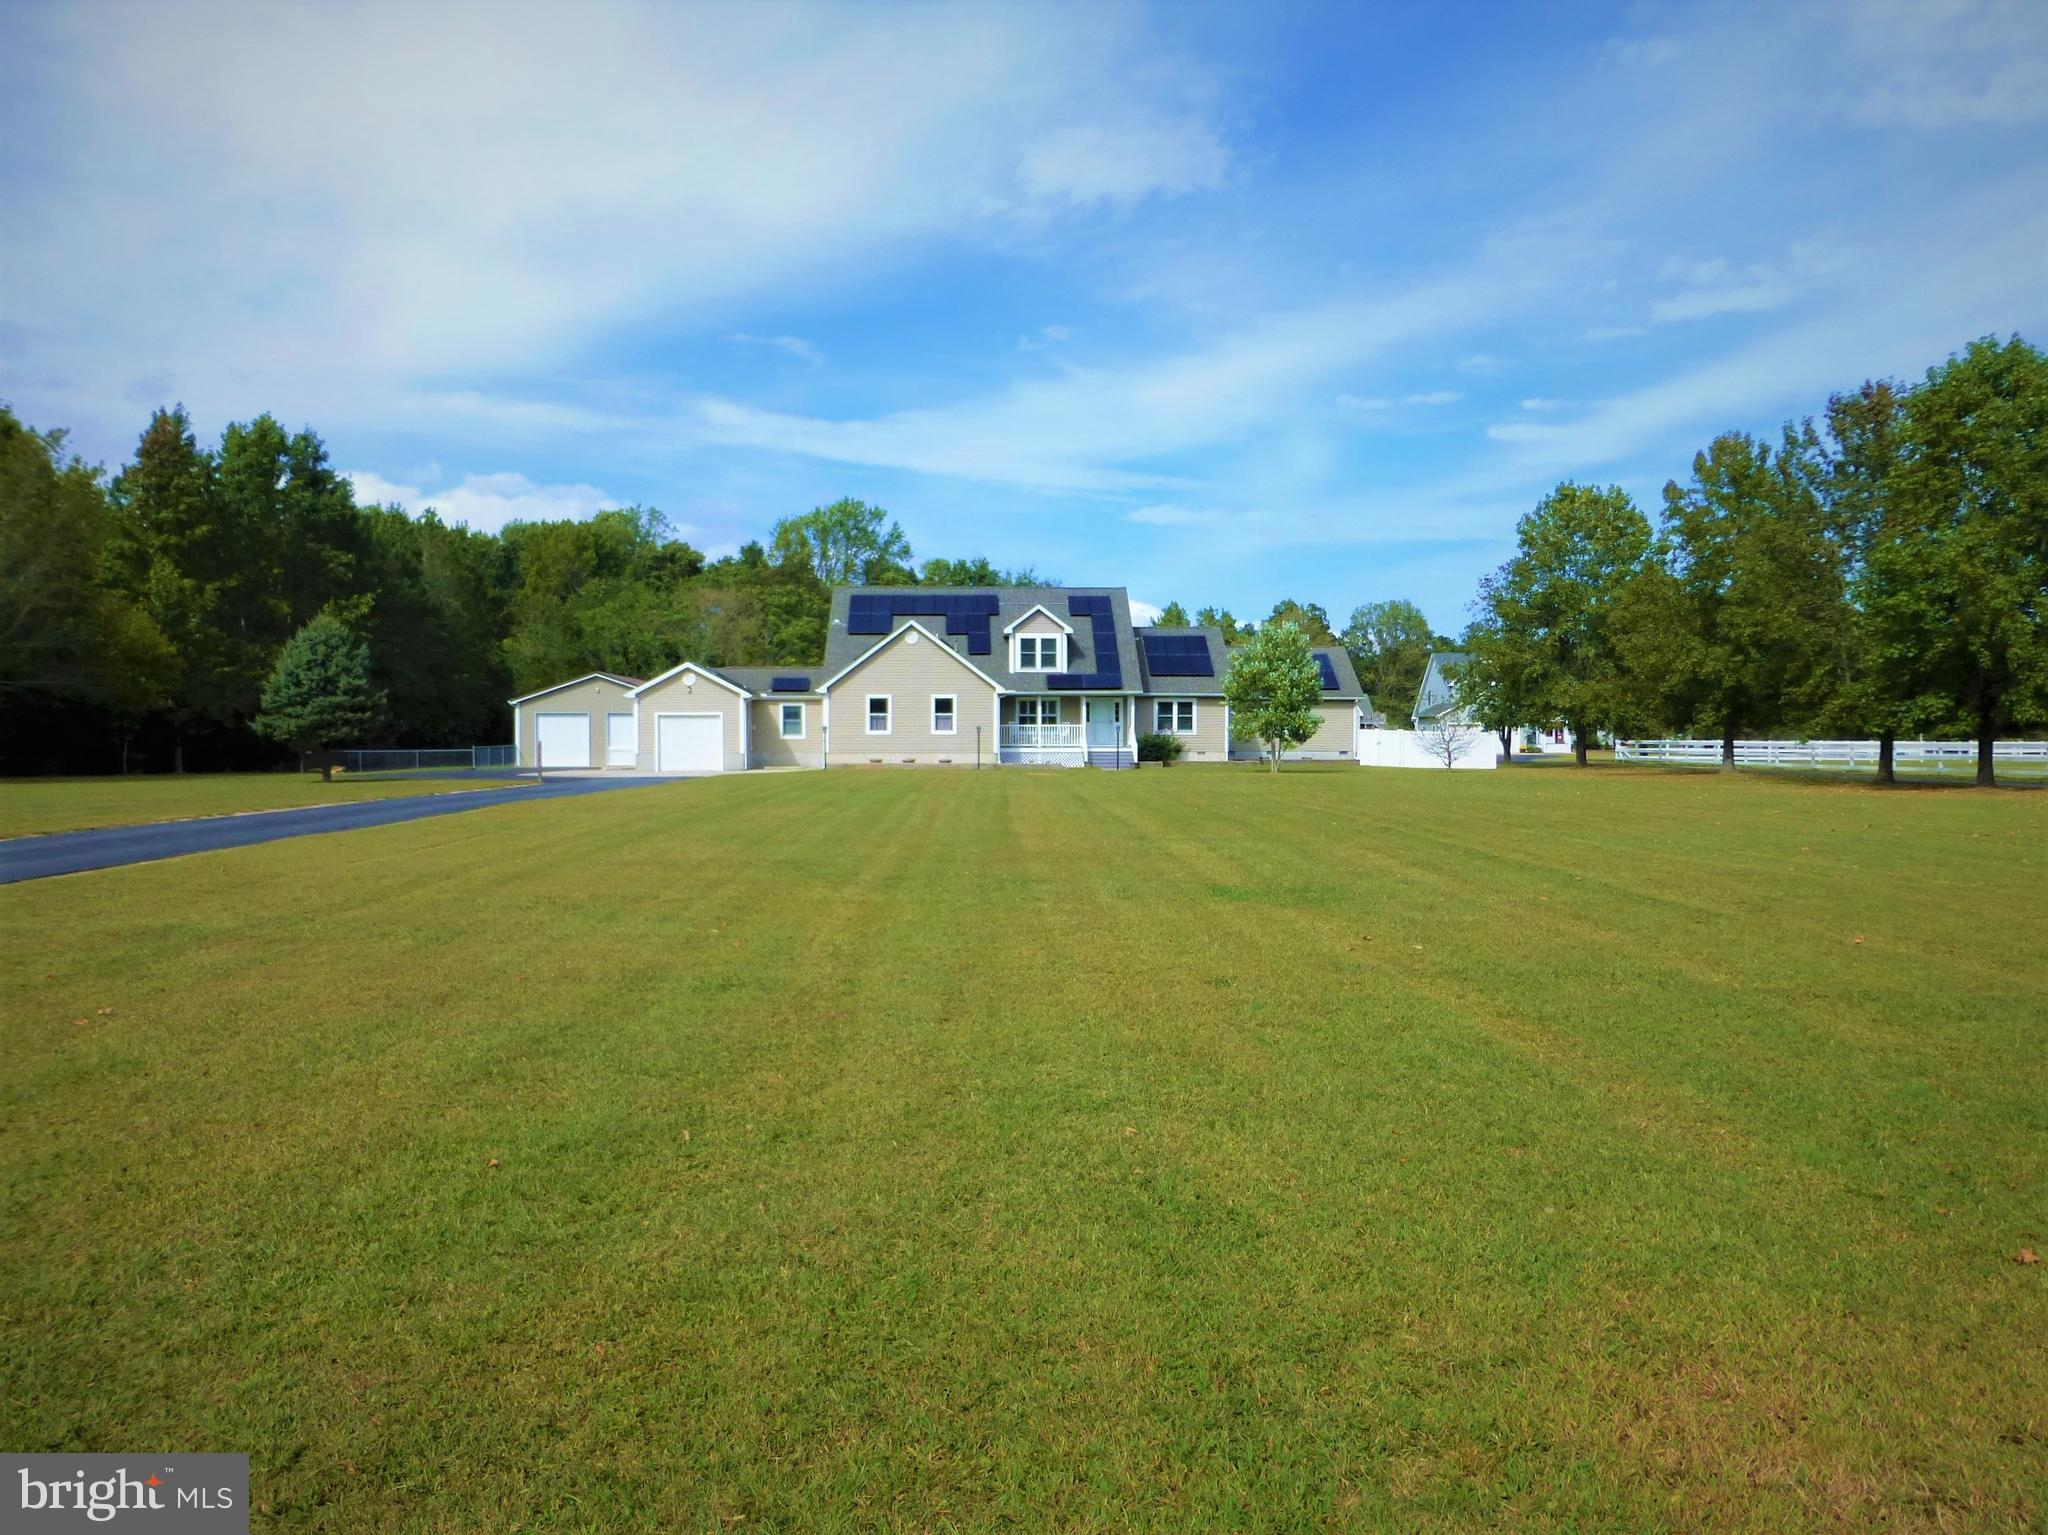 10235 SHINGLE LANDING ROAD, BISHOPVILLE, MD 21813